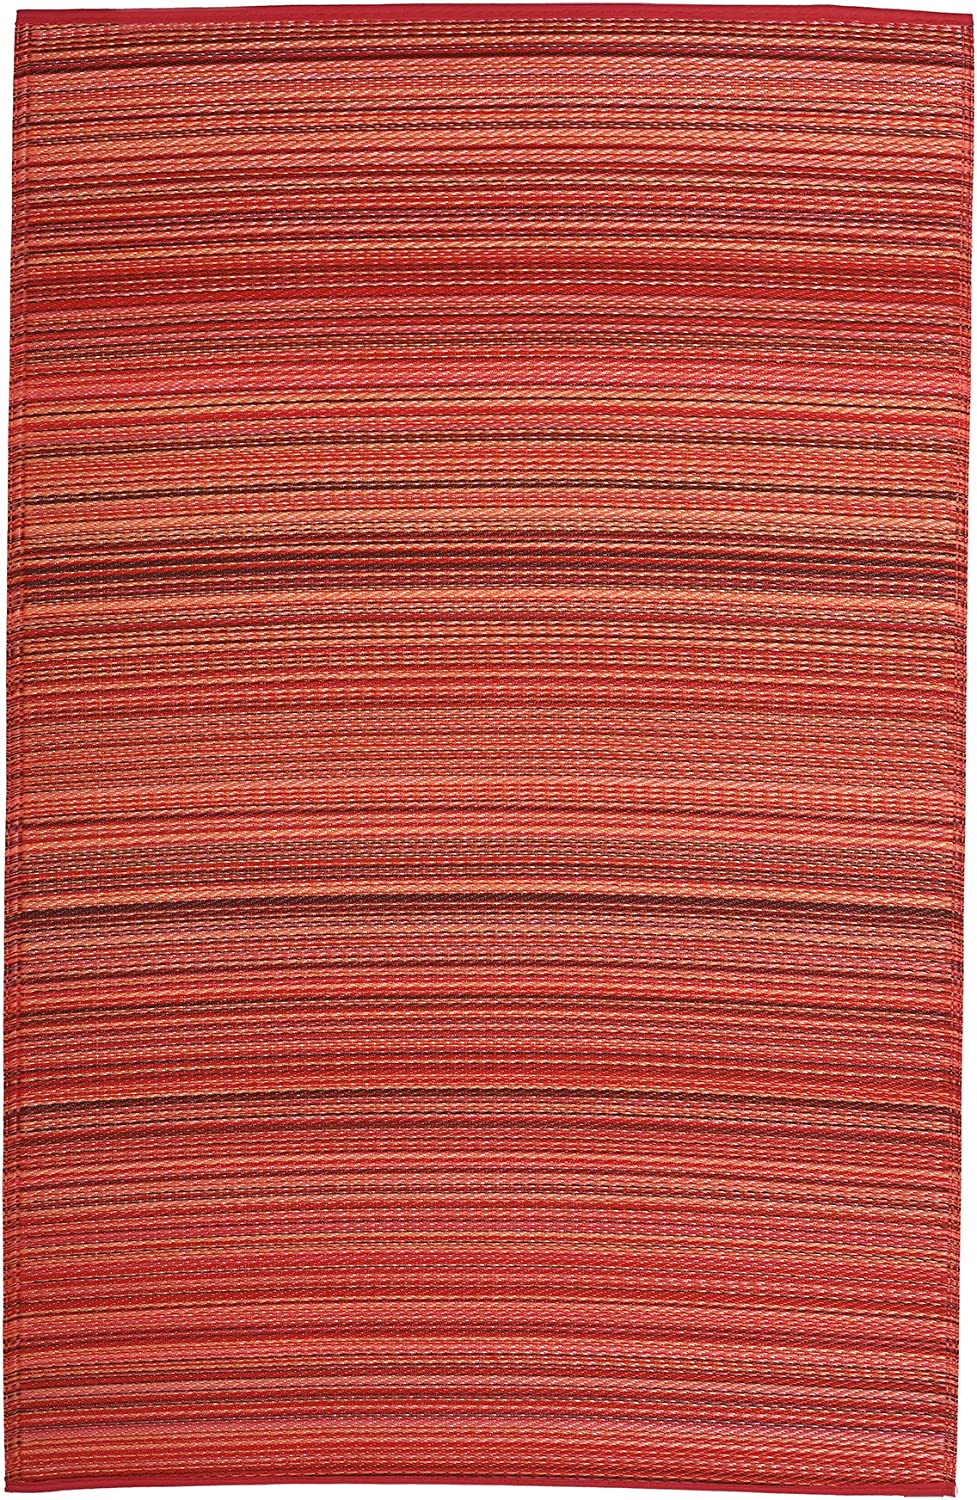 FAB HAB Reversible Outdoor/Indoor Rug | Perfect for Decking, Garden, Patio | Mold, Mildew, UV & Stain Resistant | Cancun - Sunset | 240 cm x 300 cm